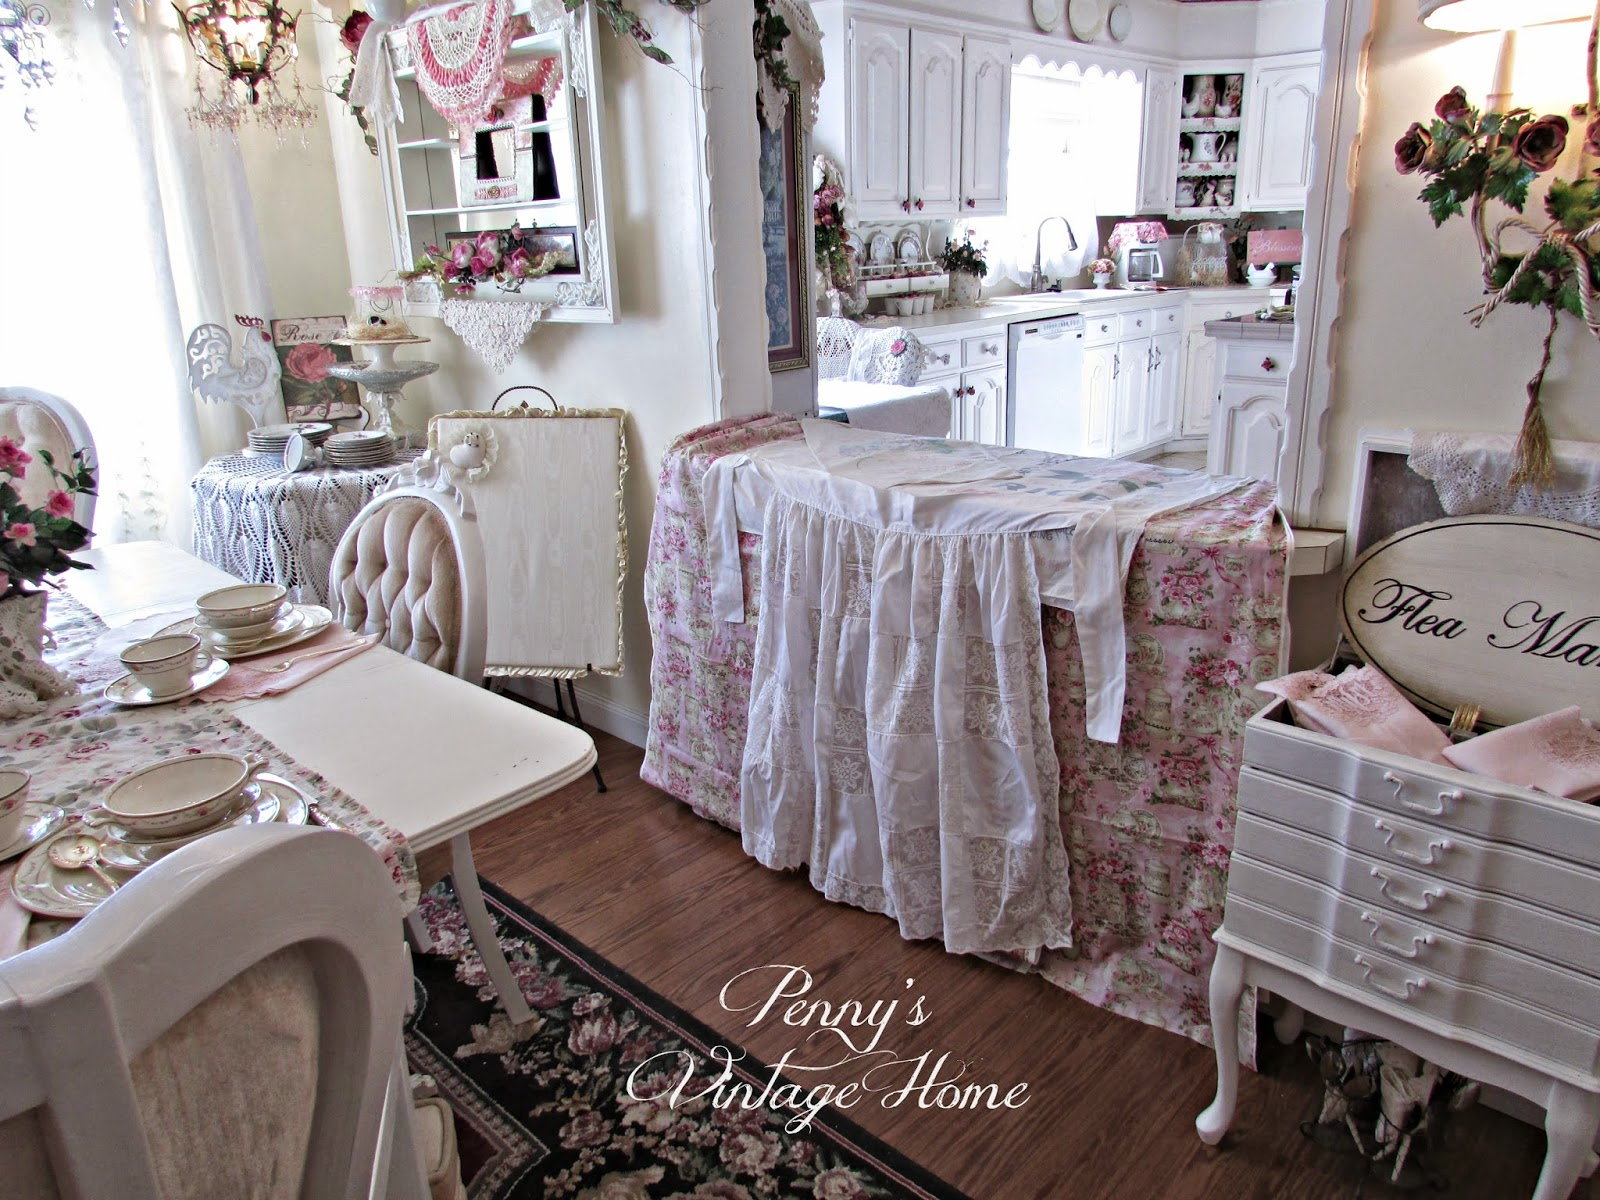 White apron to decorate - I Added A Long White Apron To The Front Of My Pink Drape Just To Add A Little Texture